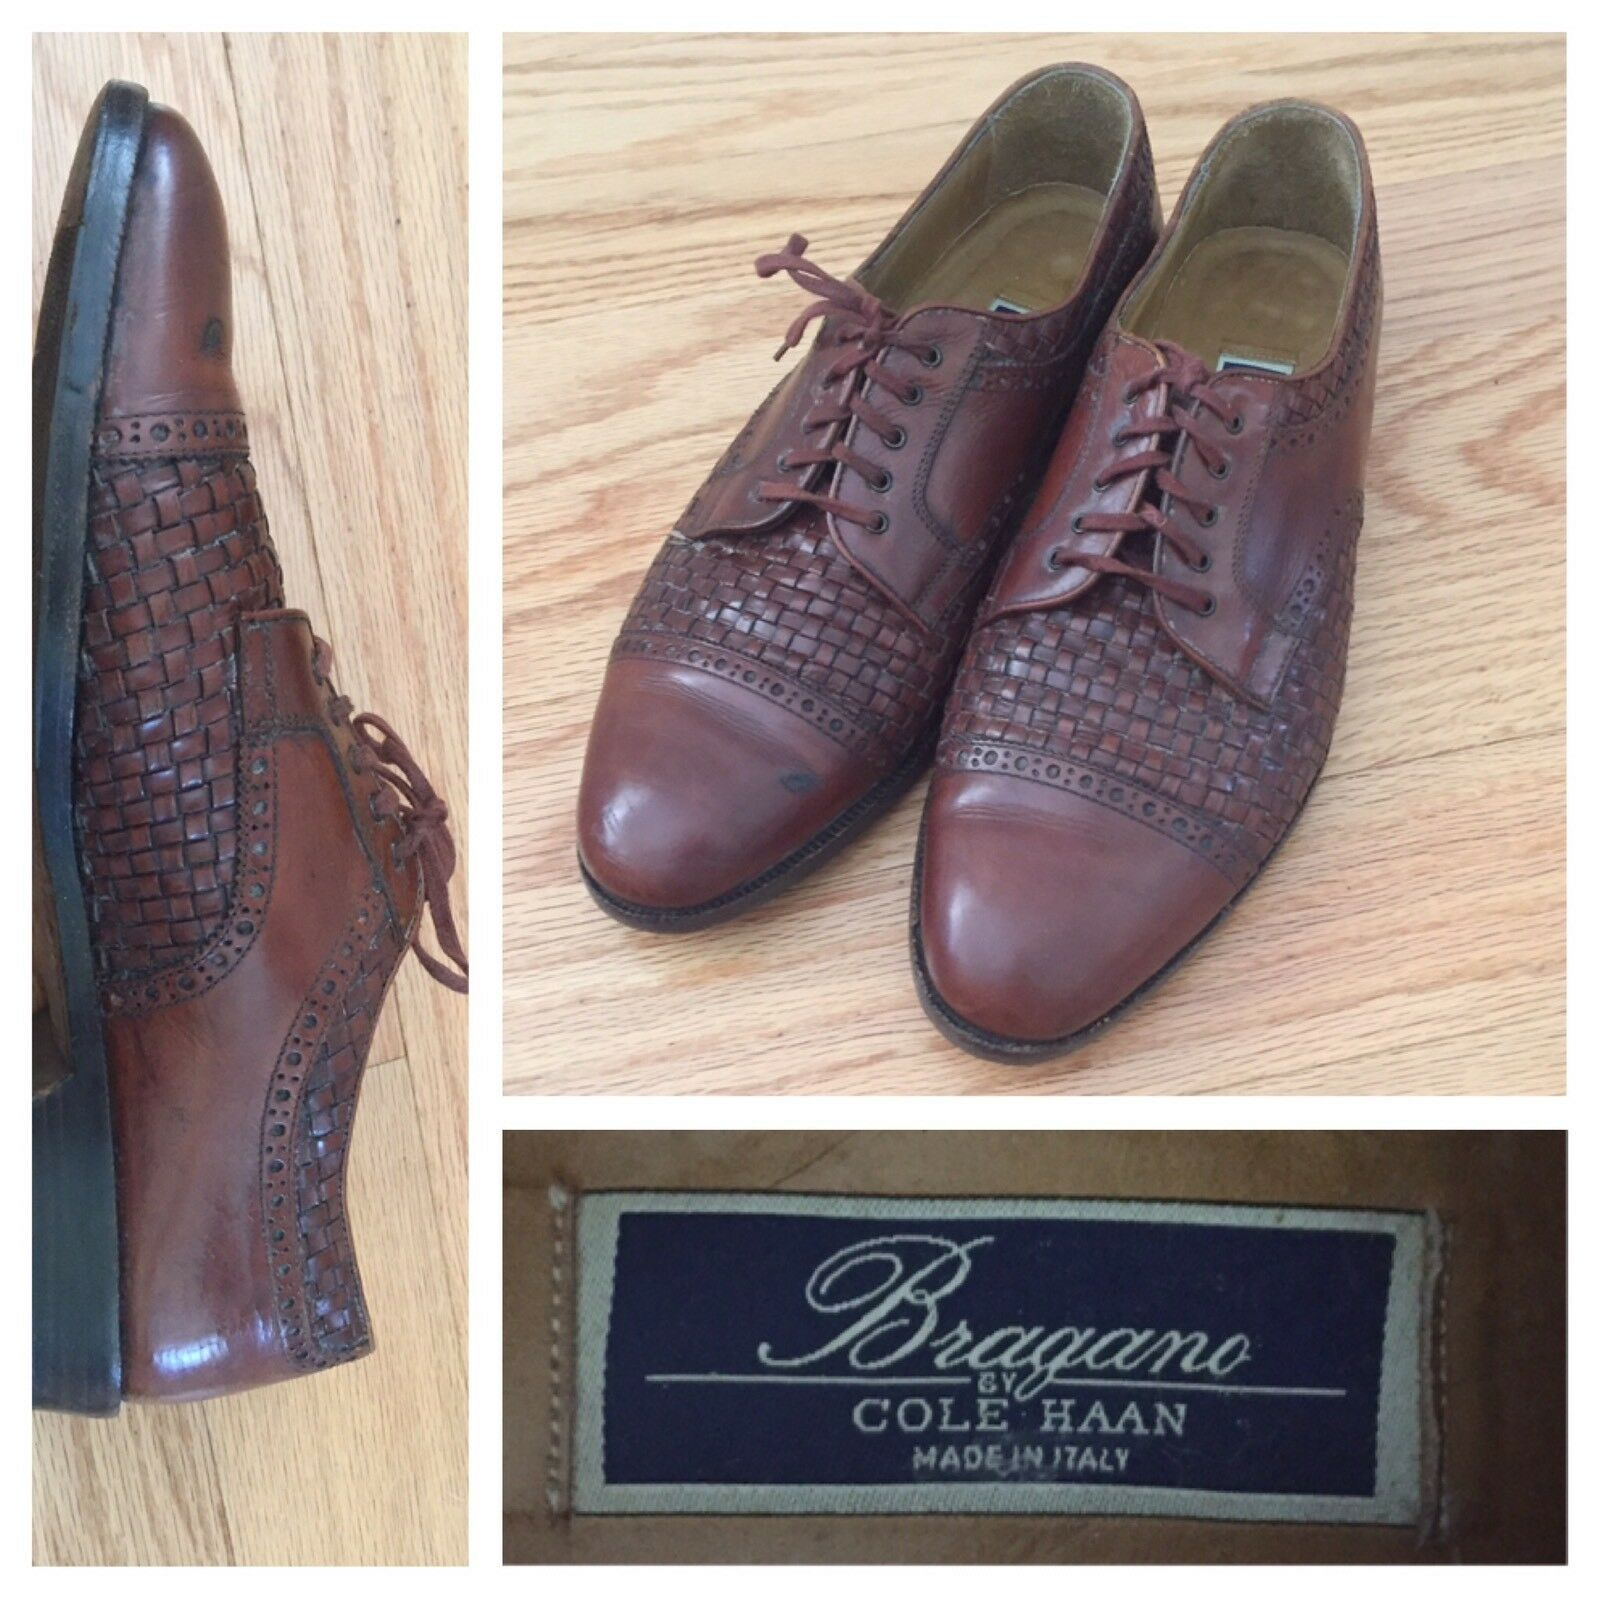 Cole Haan Bragano Italian Mens 9M Brown Leather Oxford Dress shoes Vibram Sole